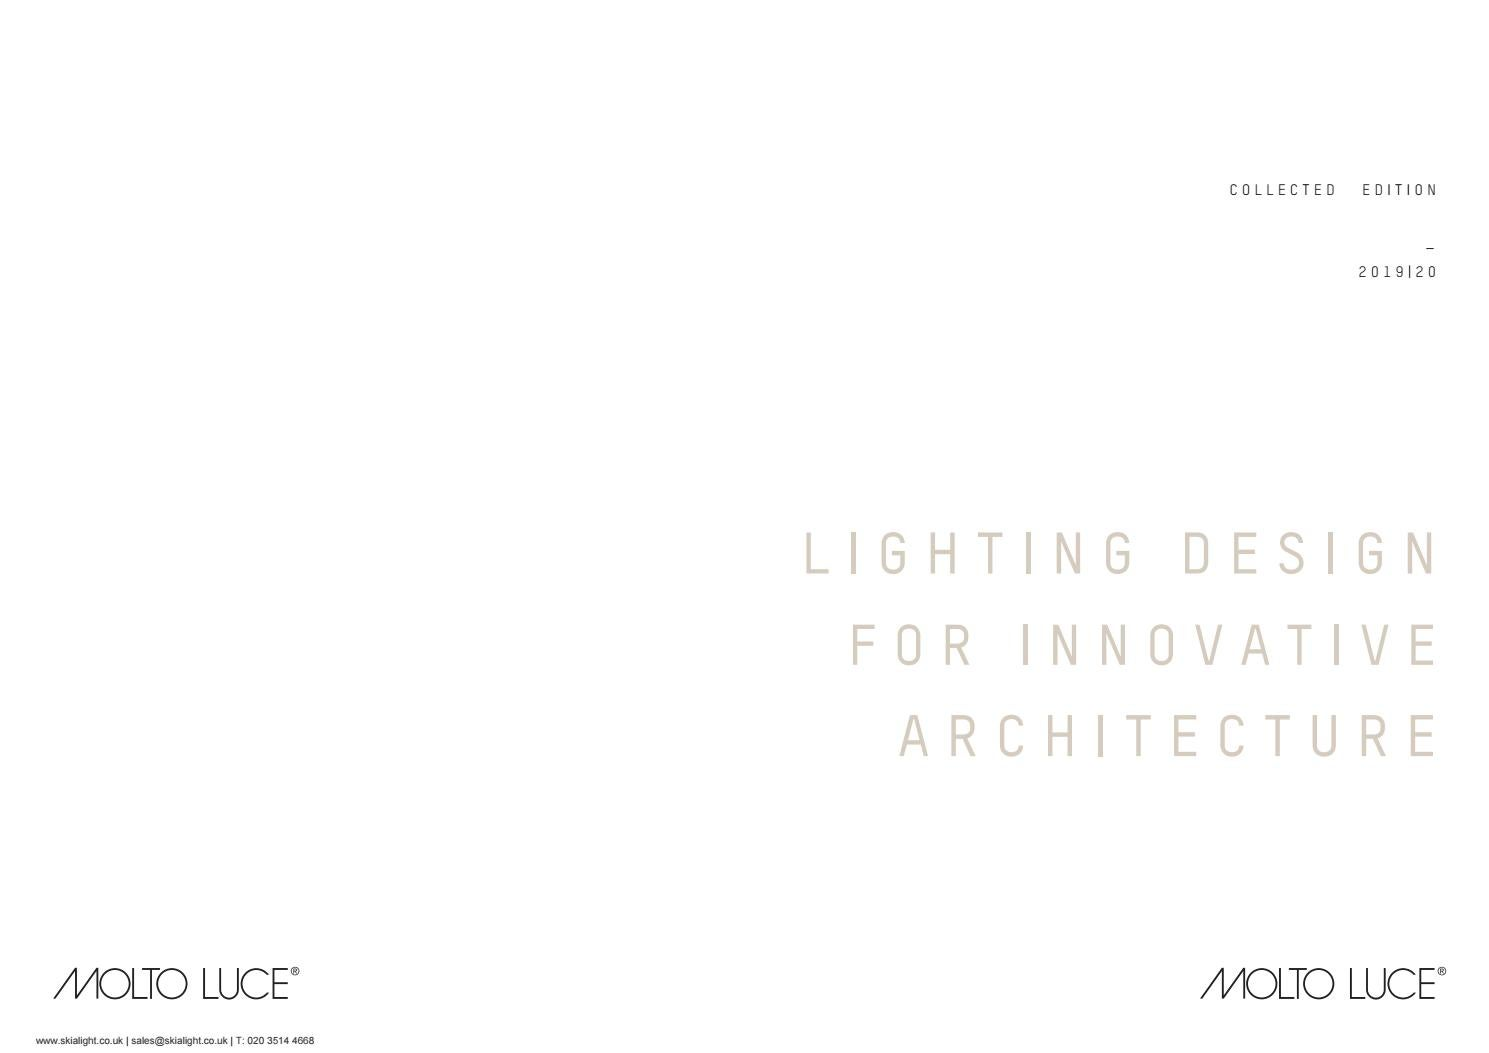 Moltoluce Architectural Lighting Catalogue 2019 By Skialight Australia 3 Circuit Led Trackspot With Inbuilt Driver Issuu